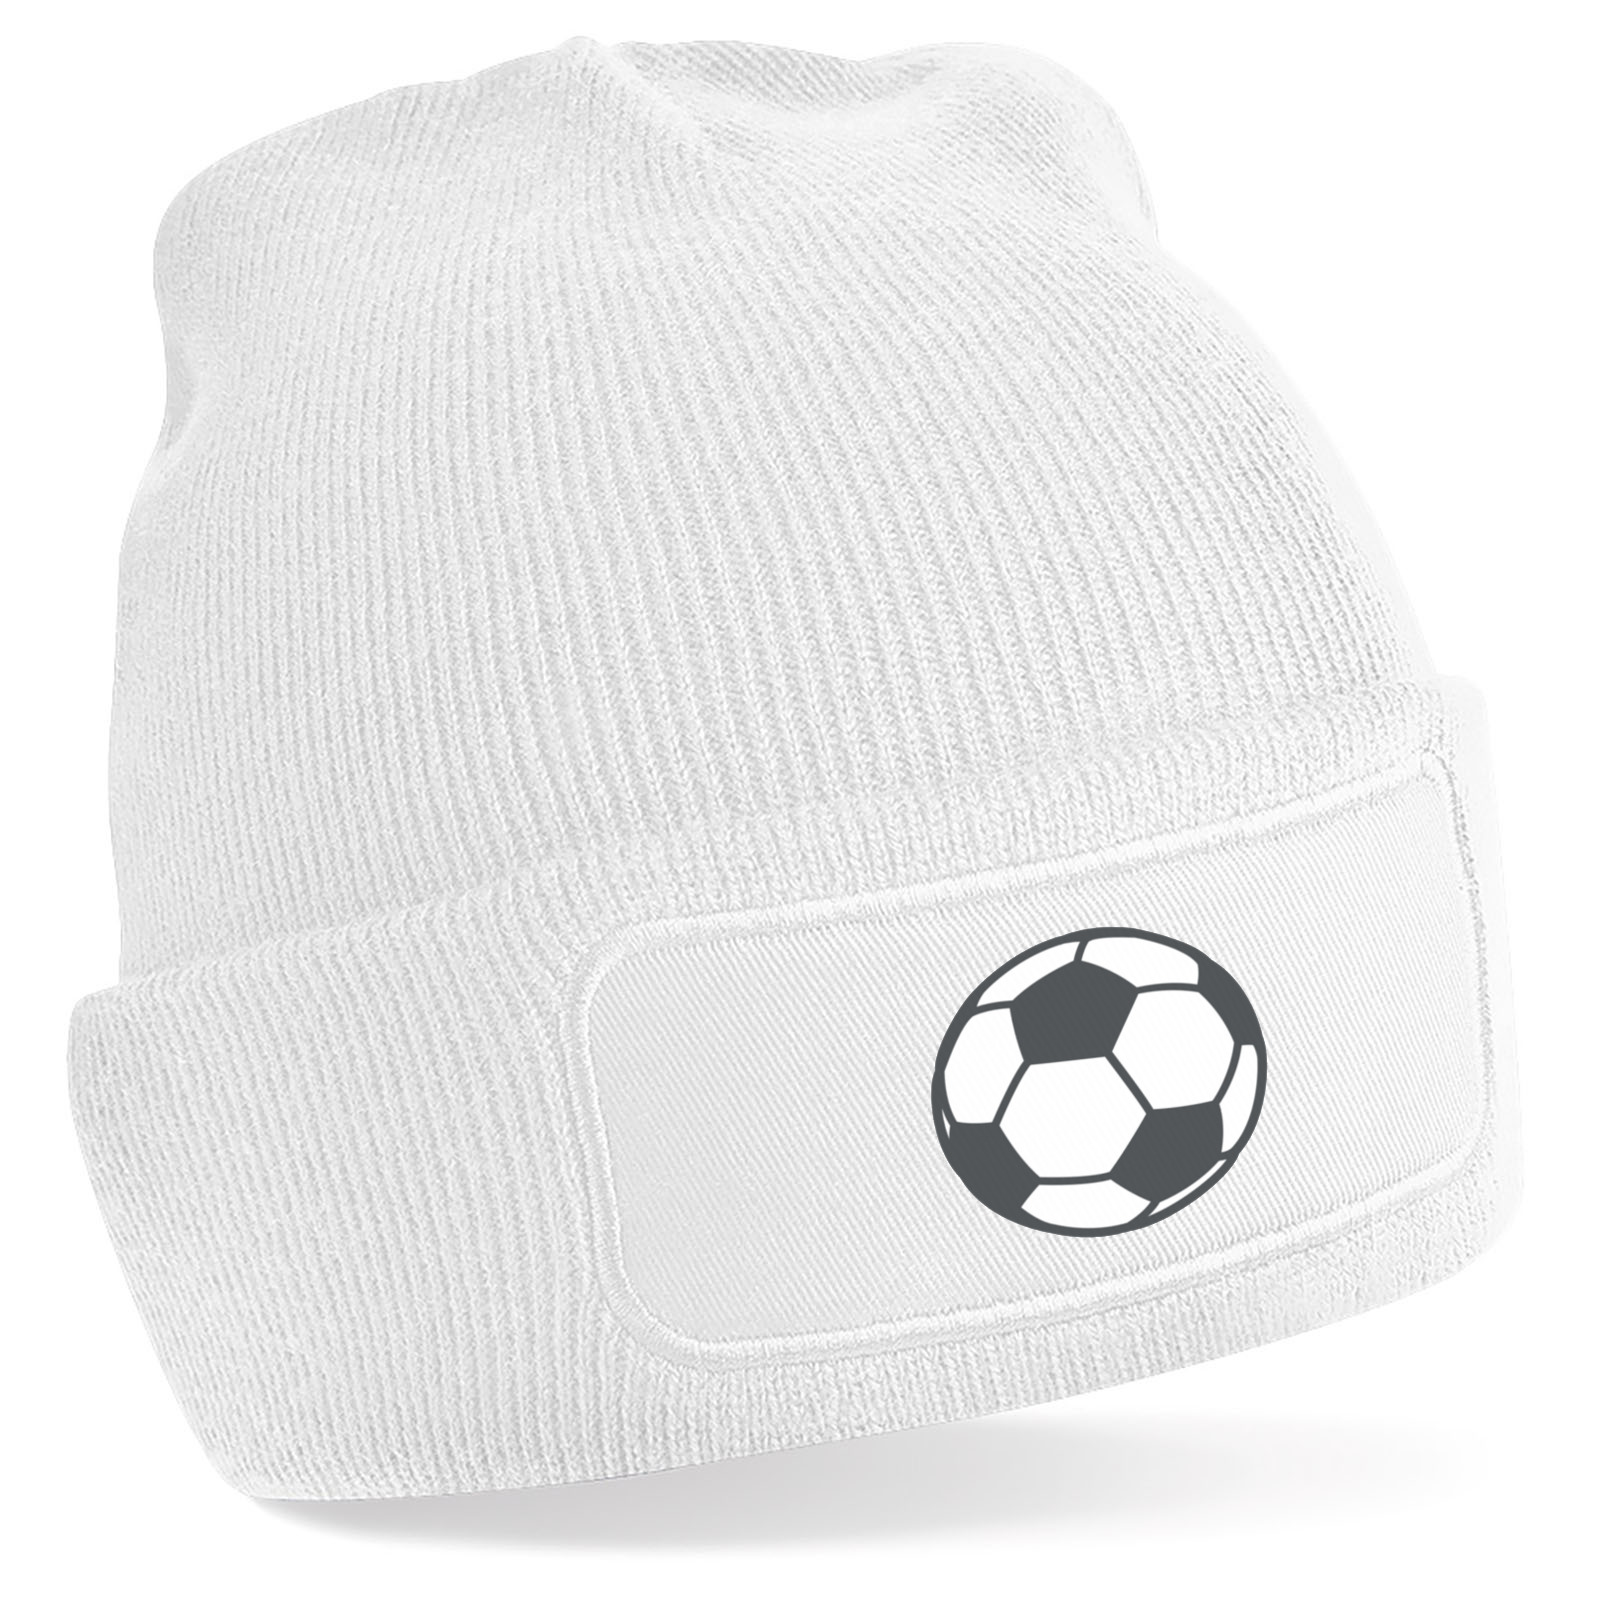 8f865fba49 Emoji Soccer Ball Beanie Hat. Available in many colours. Free ...